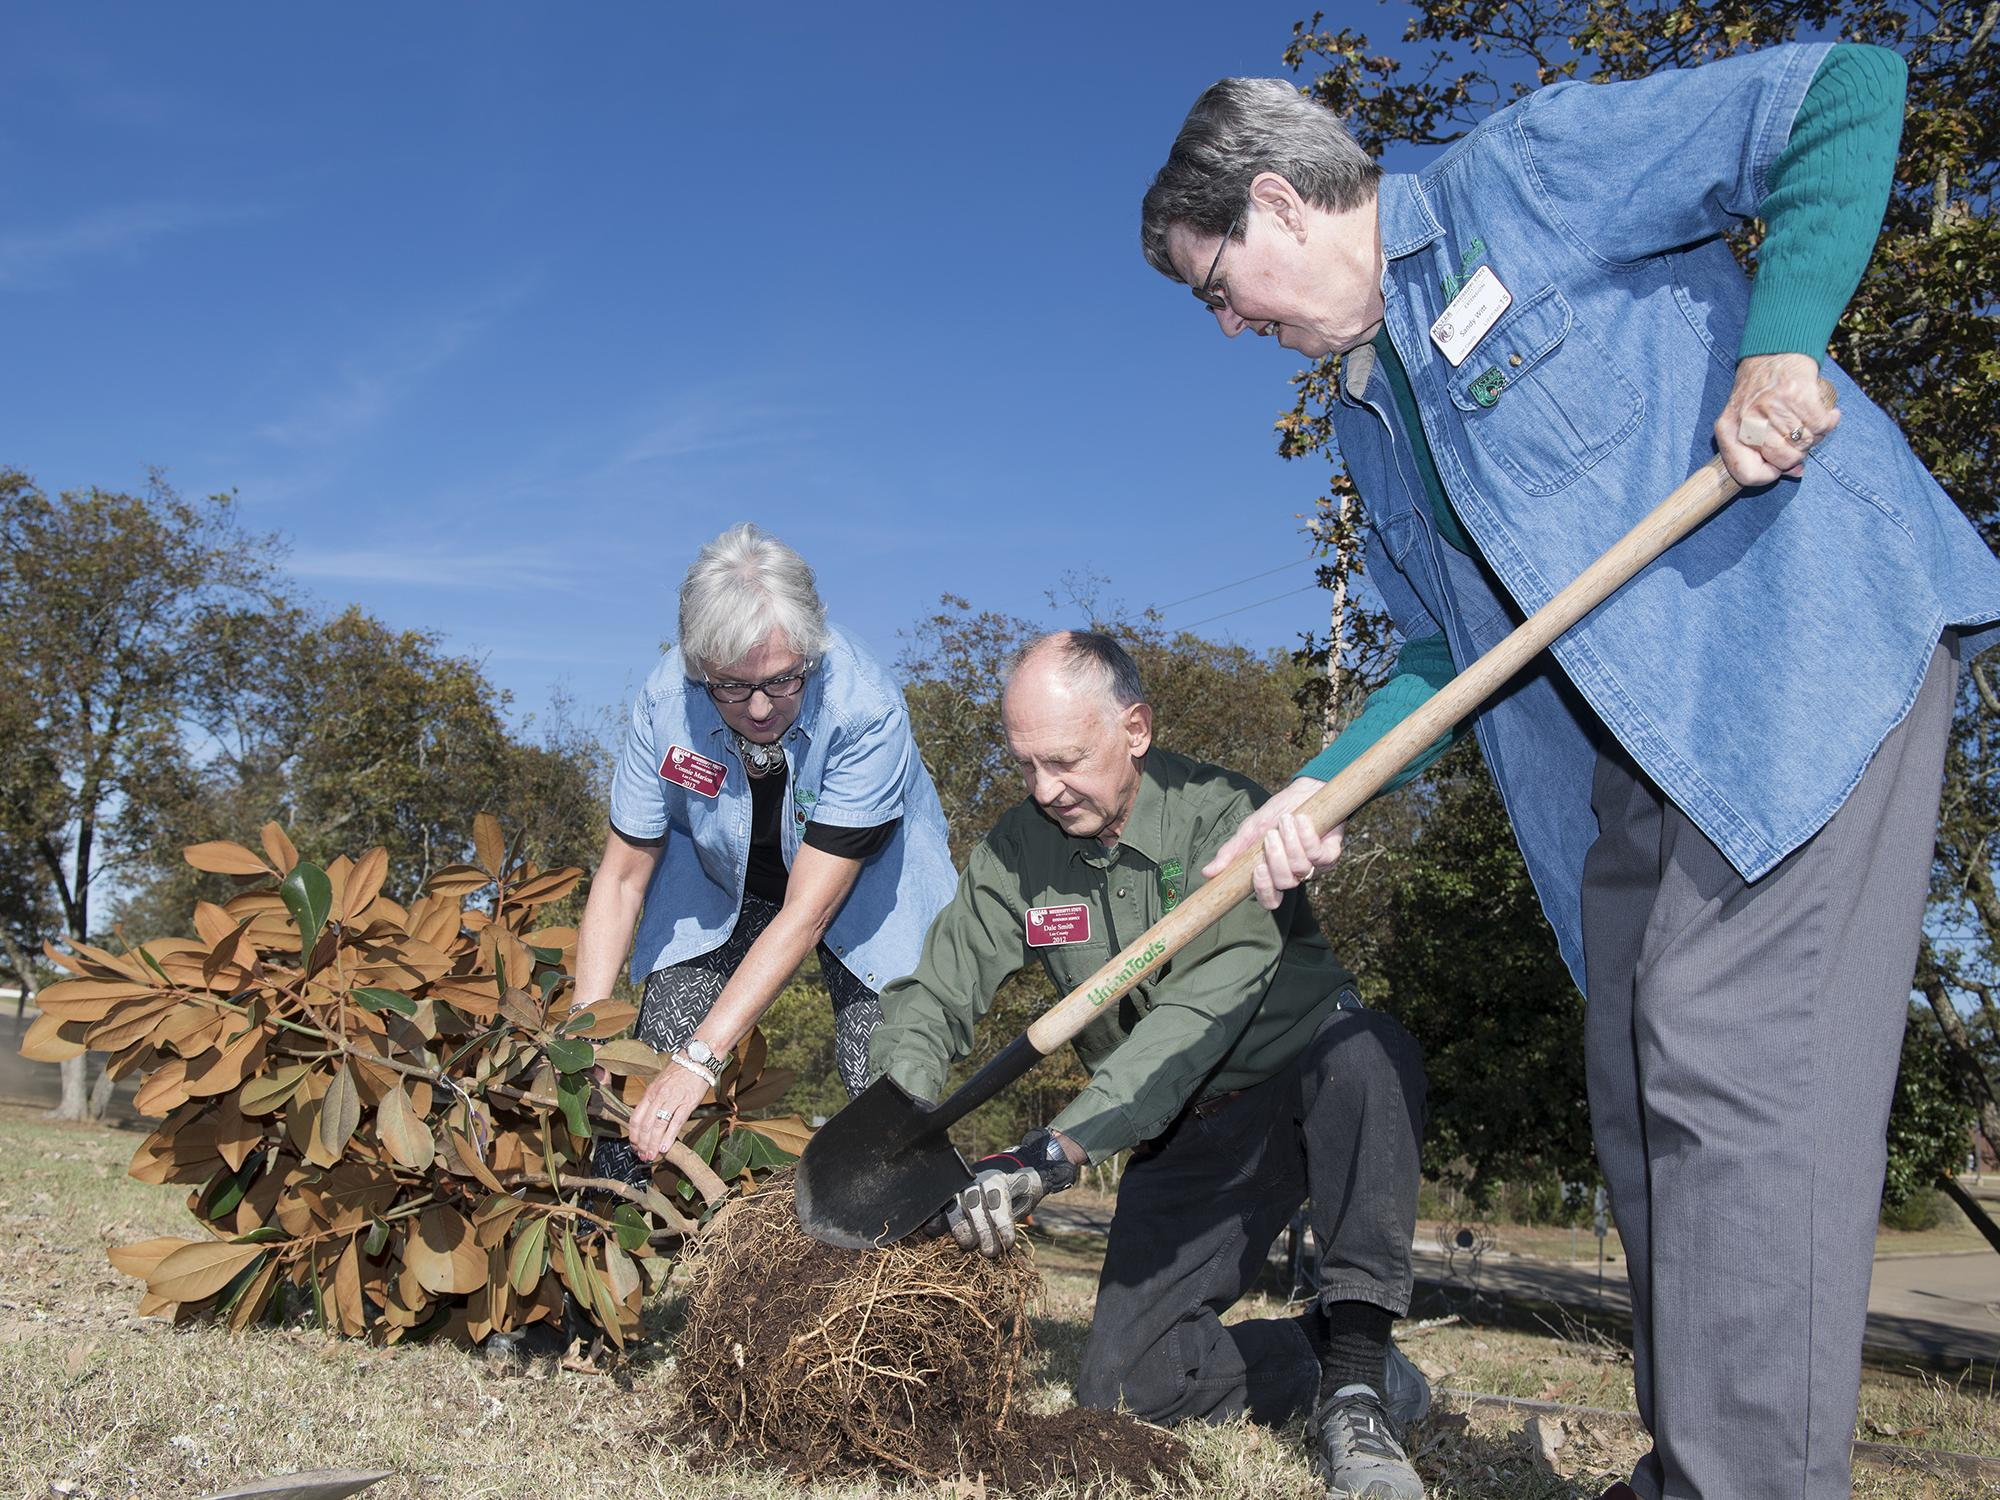 One woman uses a shovel to break open a rootball on a small, unplanted tree while another woman and a man assist.